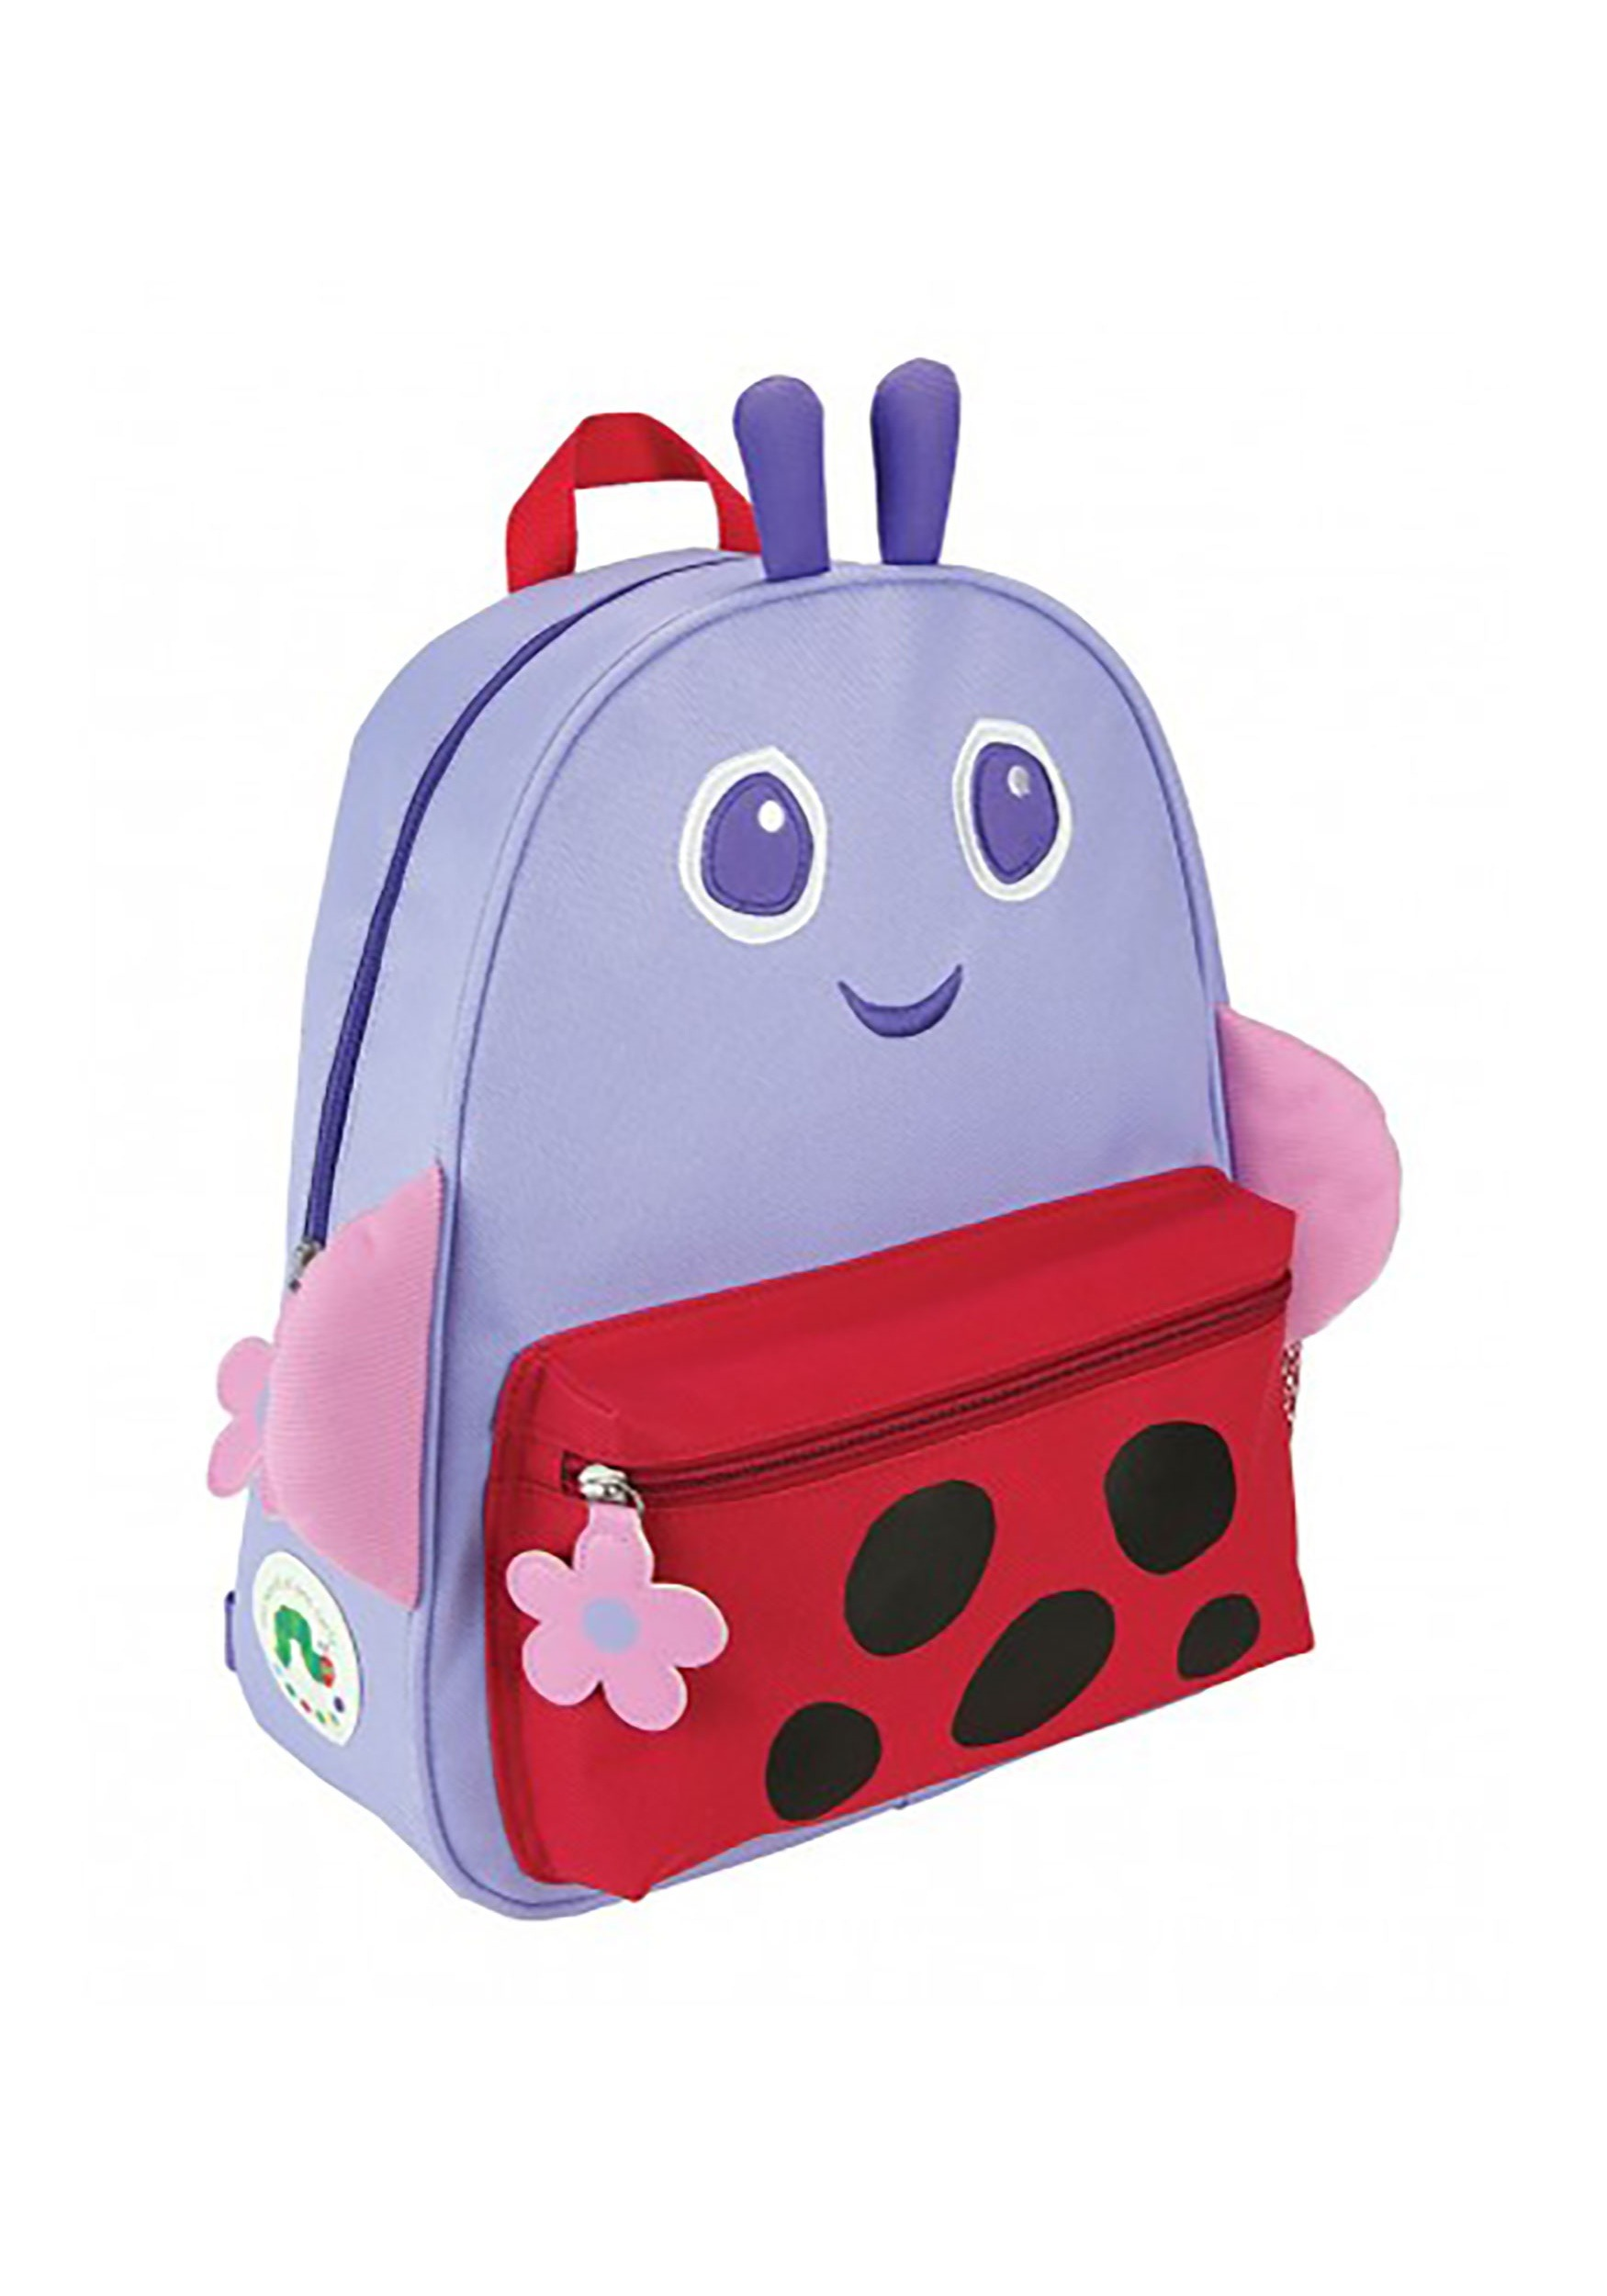 Superb The Grouchy Ladybug The World Of Eric Carle Backpack Machost Co Dining Chair Design Ideas Machostcouk